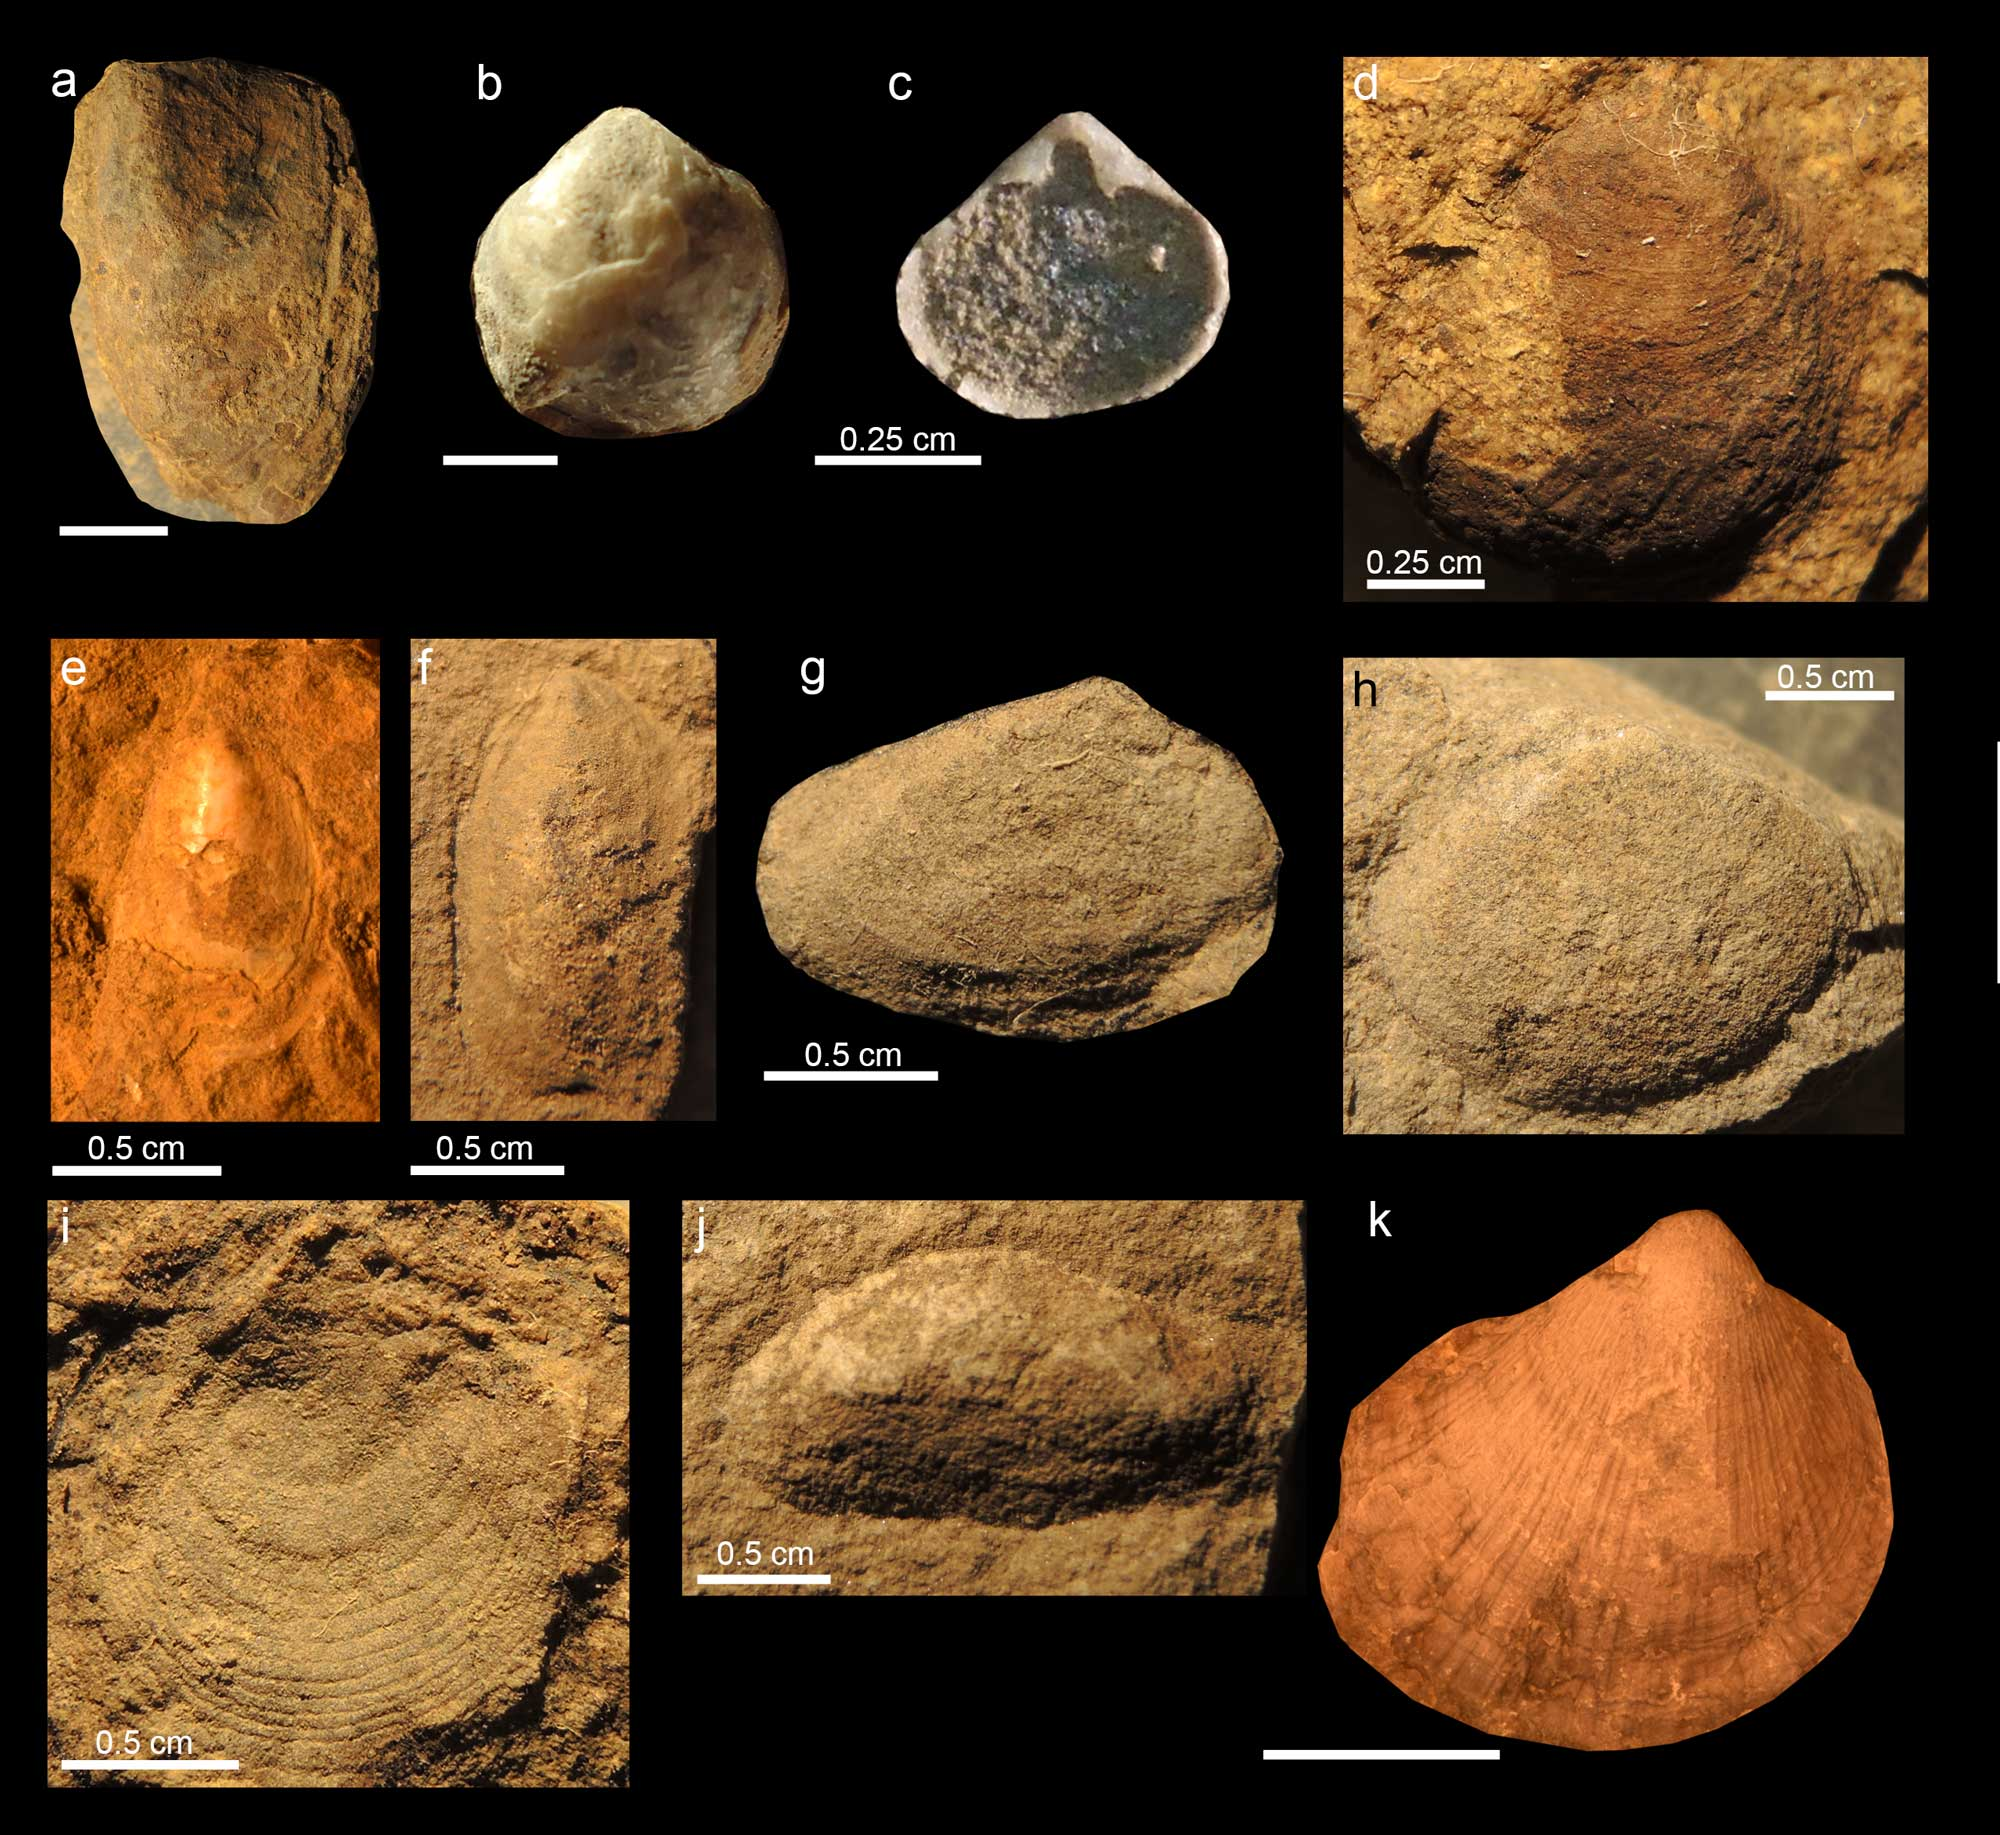 Photographs of Triassic bivalve specimens.